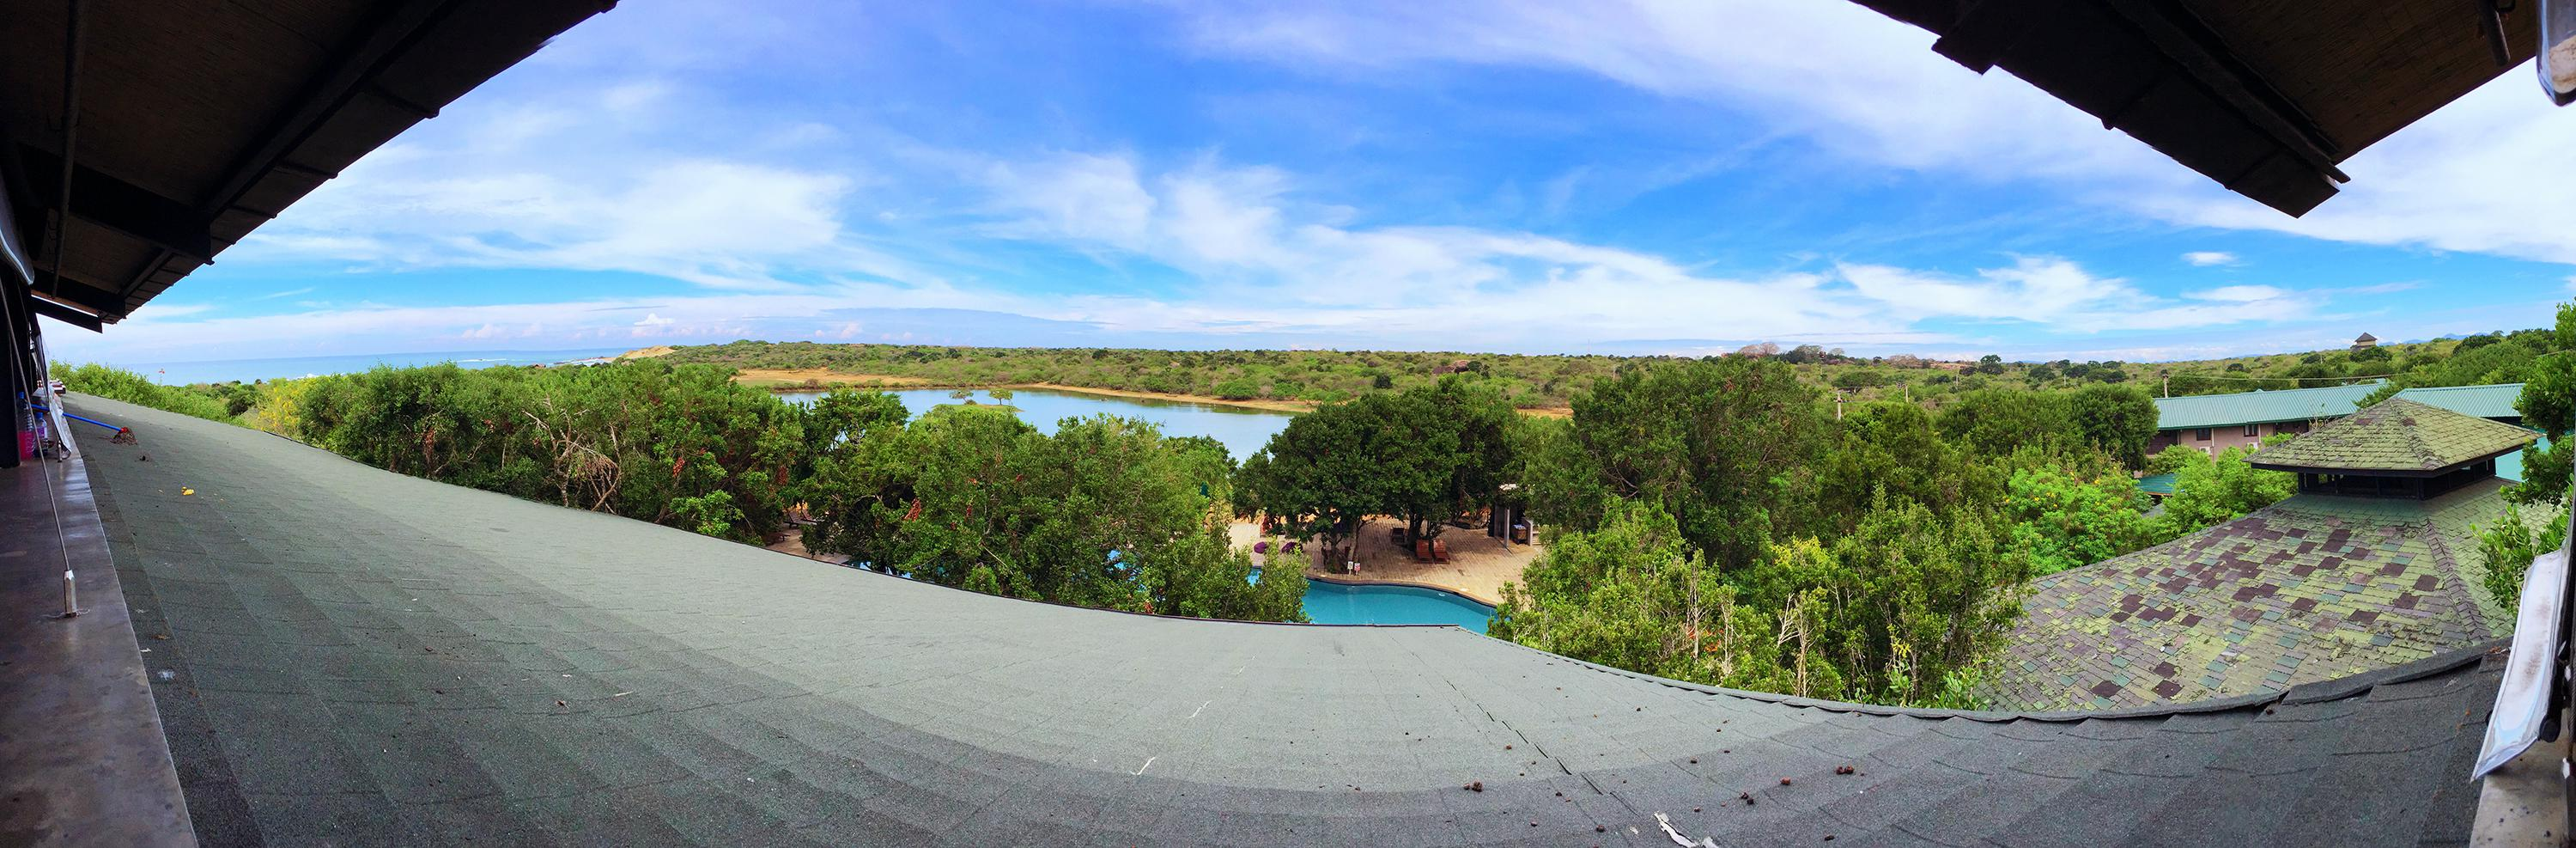 Panorama from The Observation Deck & Bar at The Cinnamon Wild.